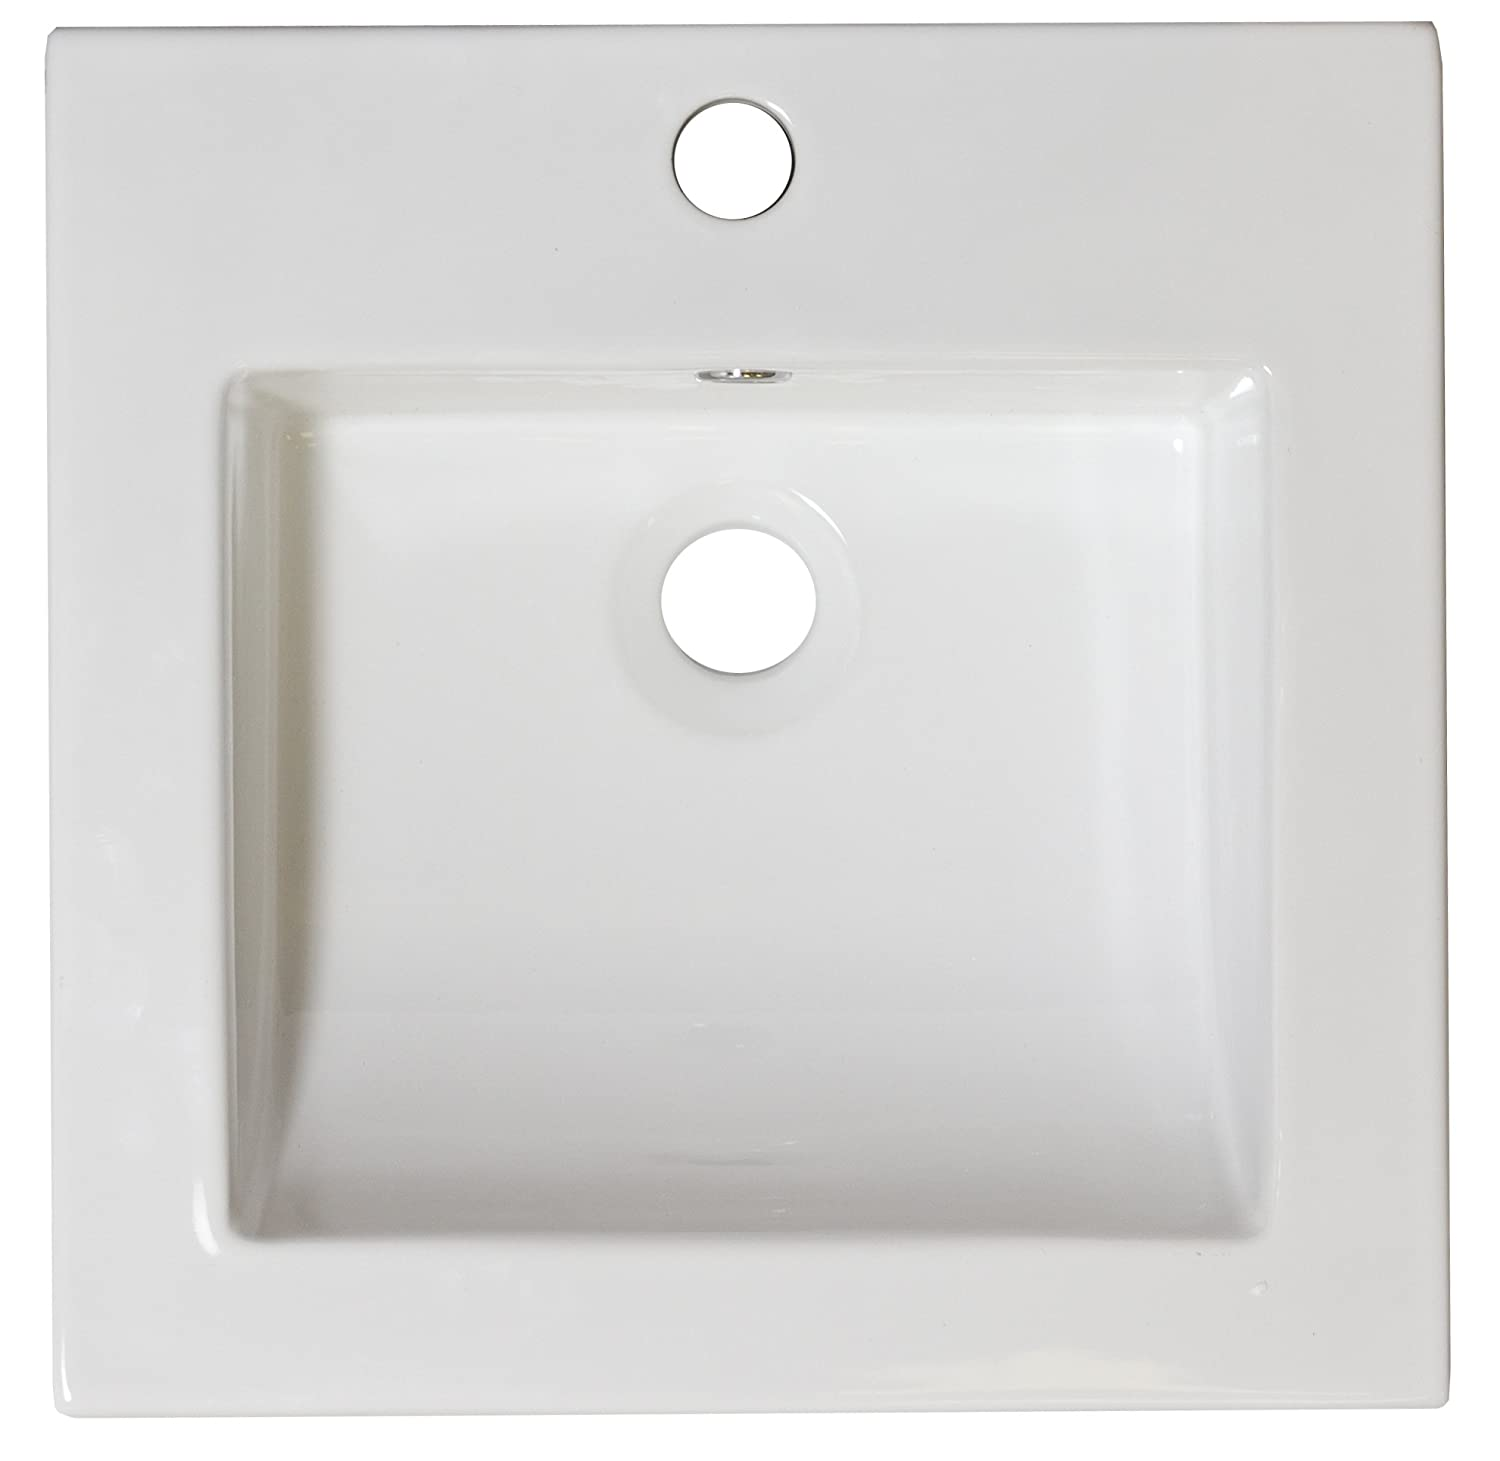 American Imaginations AI-1-1310 Ceramic Top for Single Hole Faucet, 16.5-Inch x 16.5-Inch, White